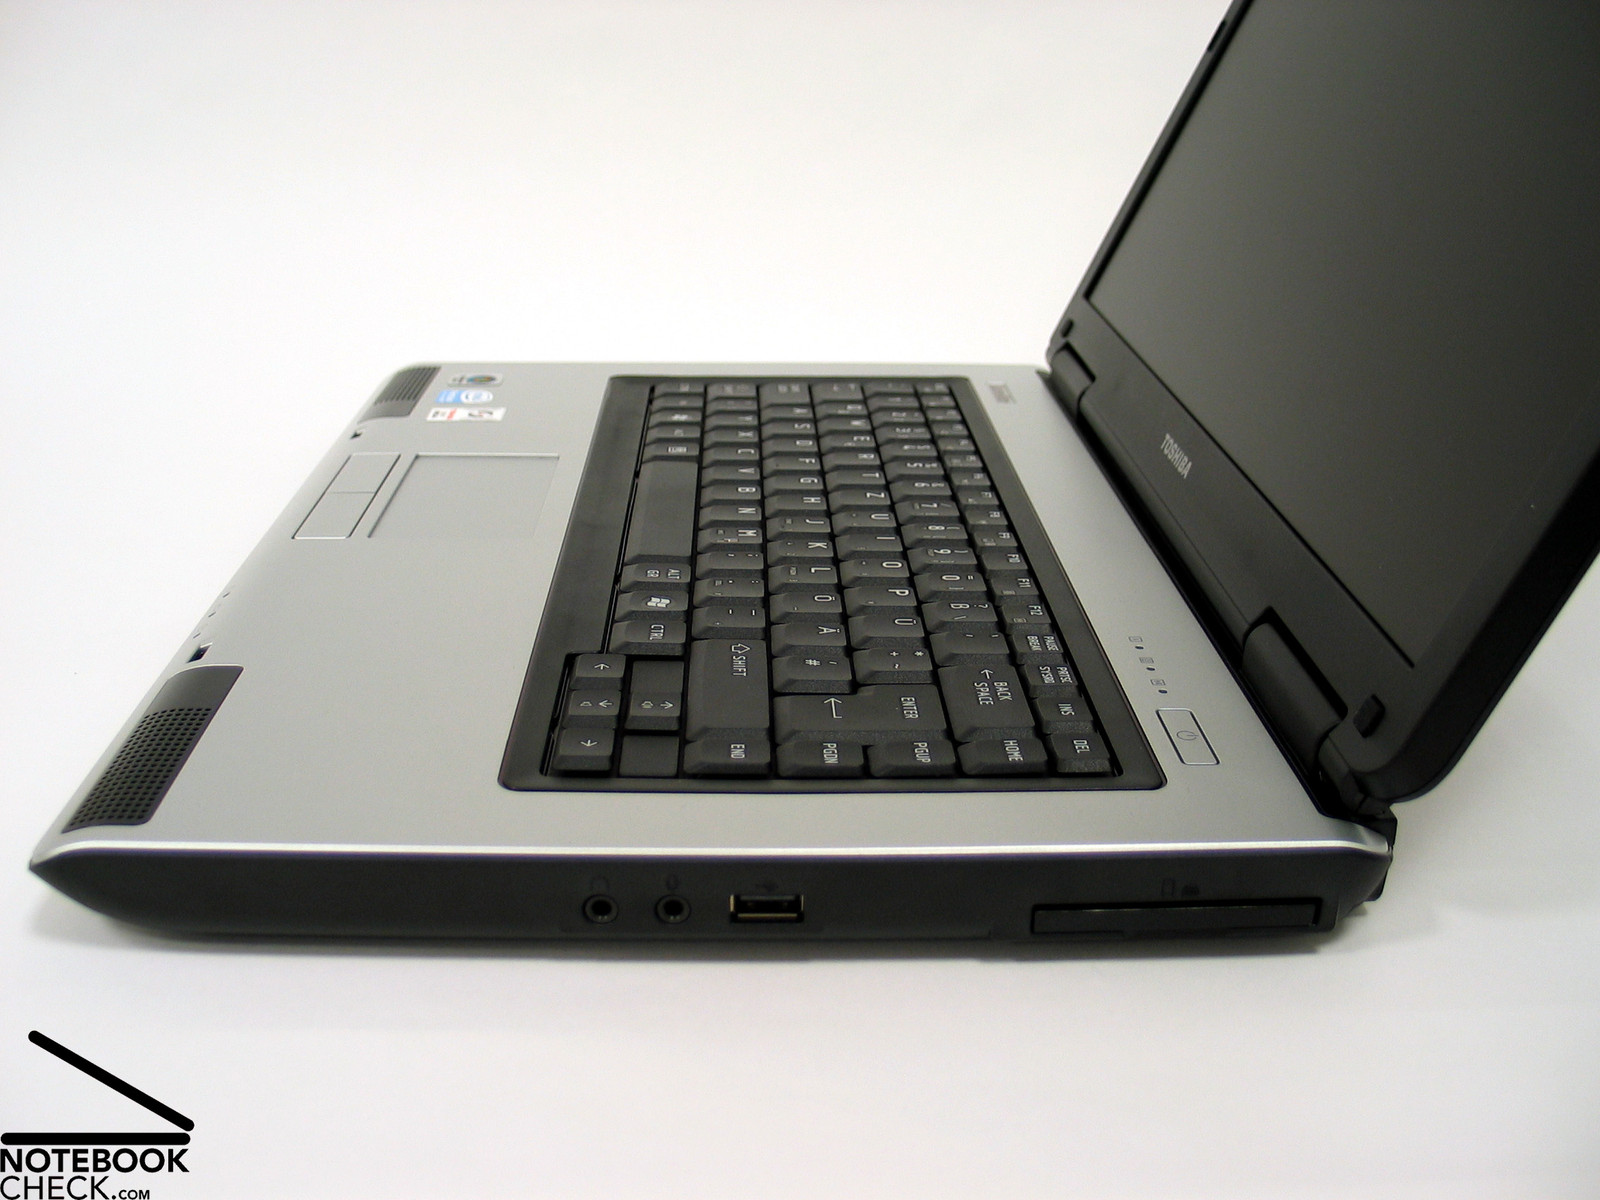 TOSHIBA SATELLITE L40 SOUND TREIBER WINDOWS 8